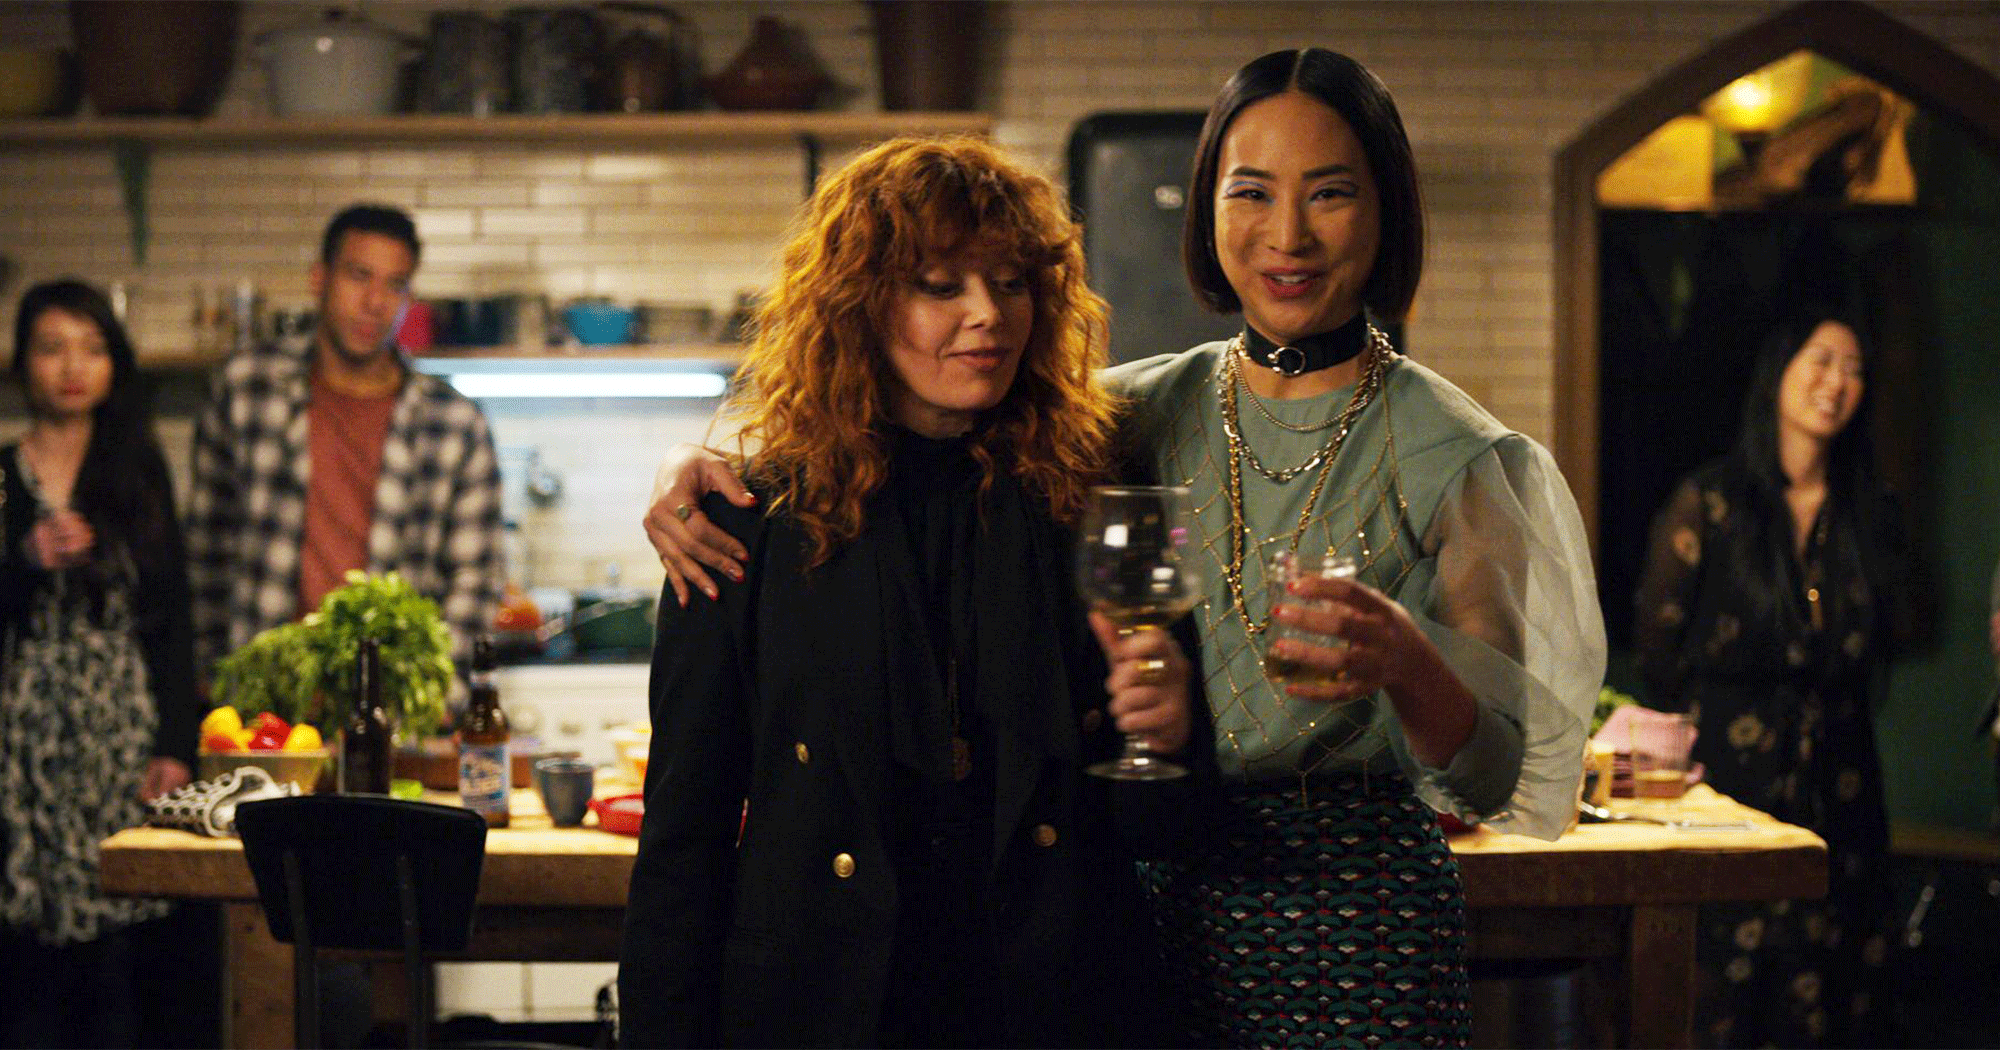 Every Song On Netflix Russian Doll Soundtrack — Listen